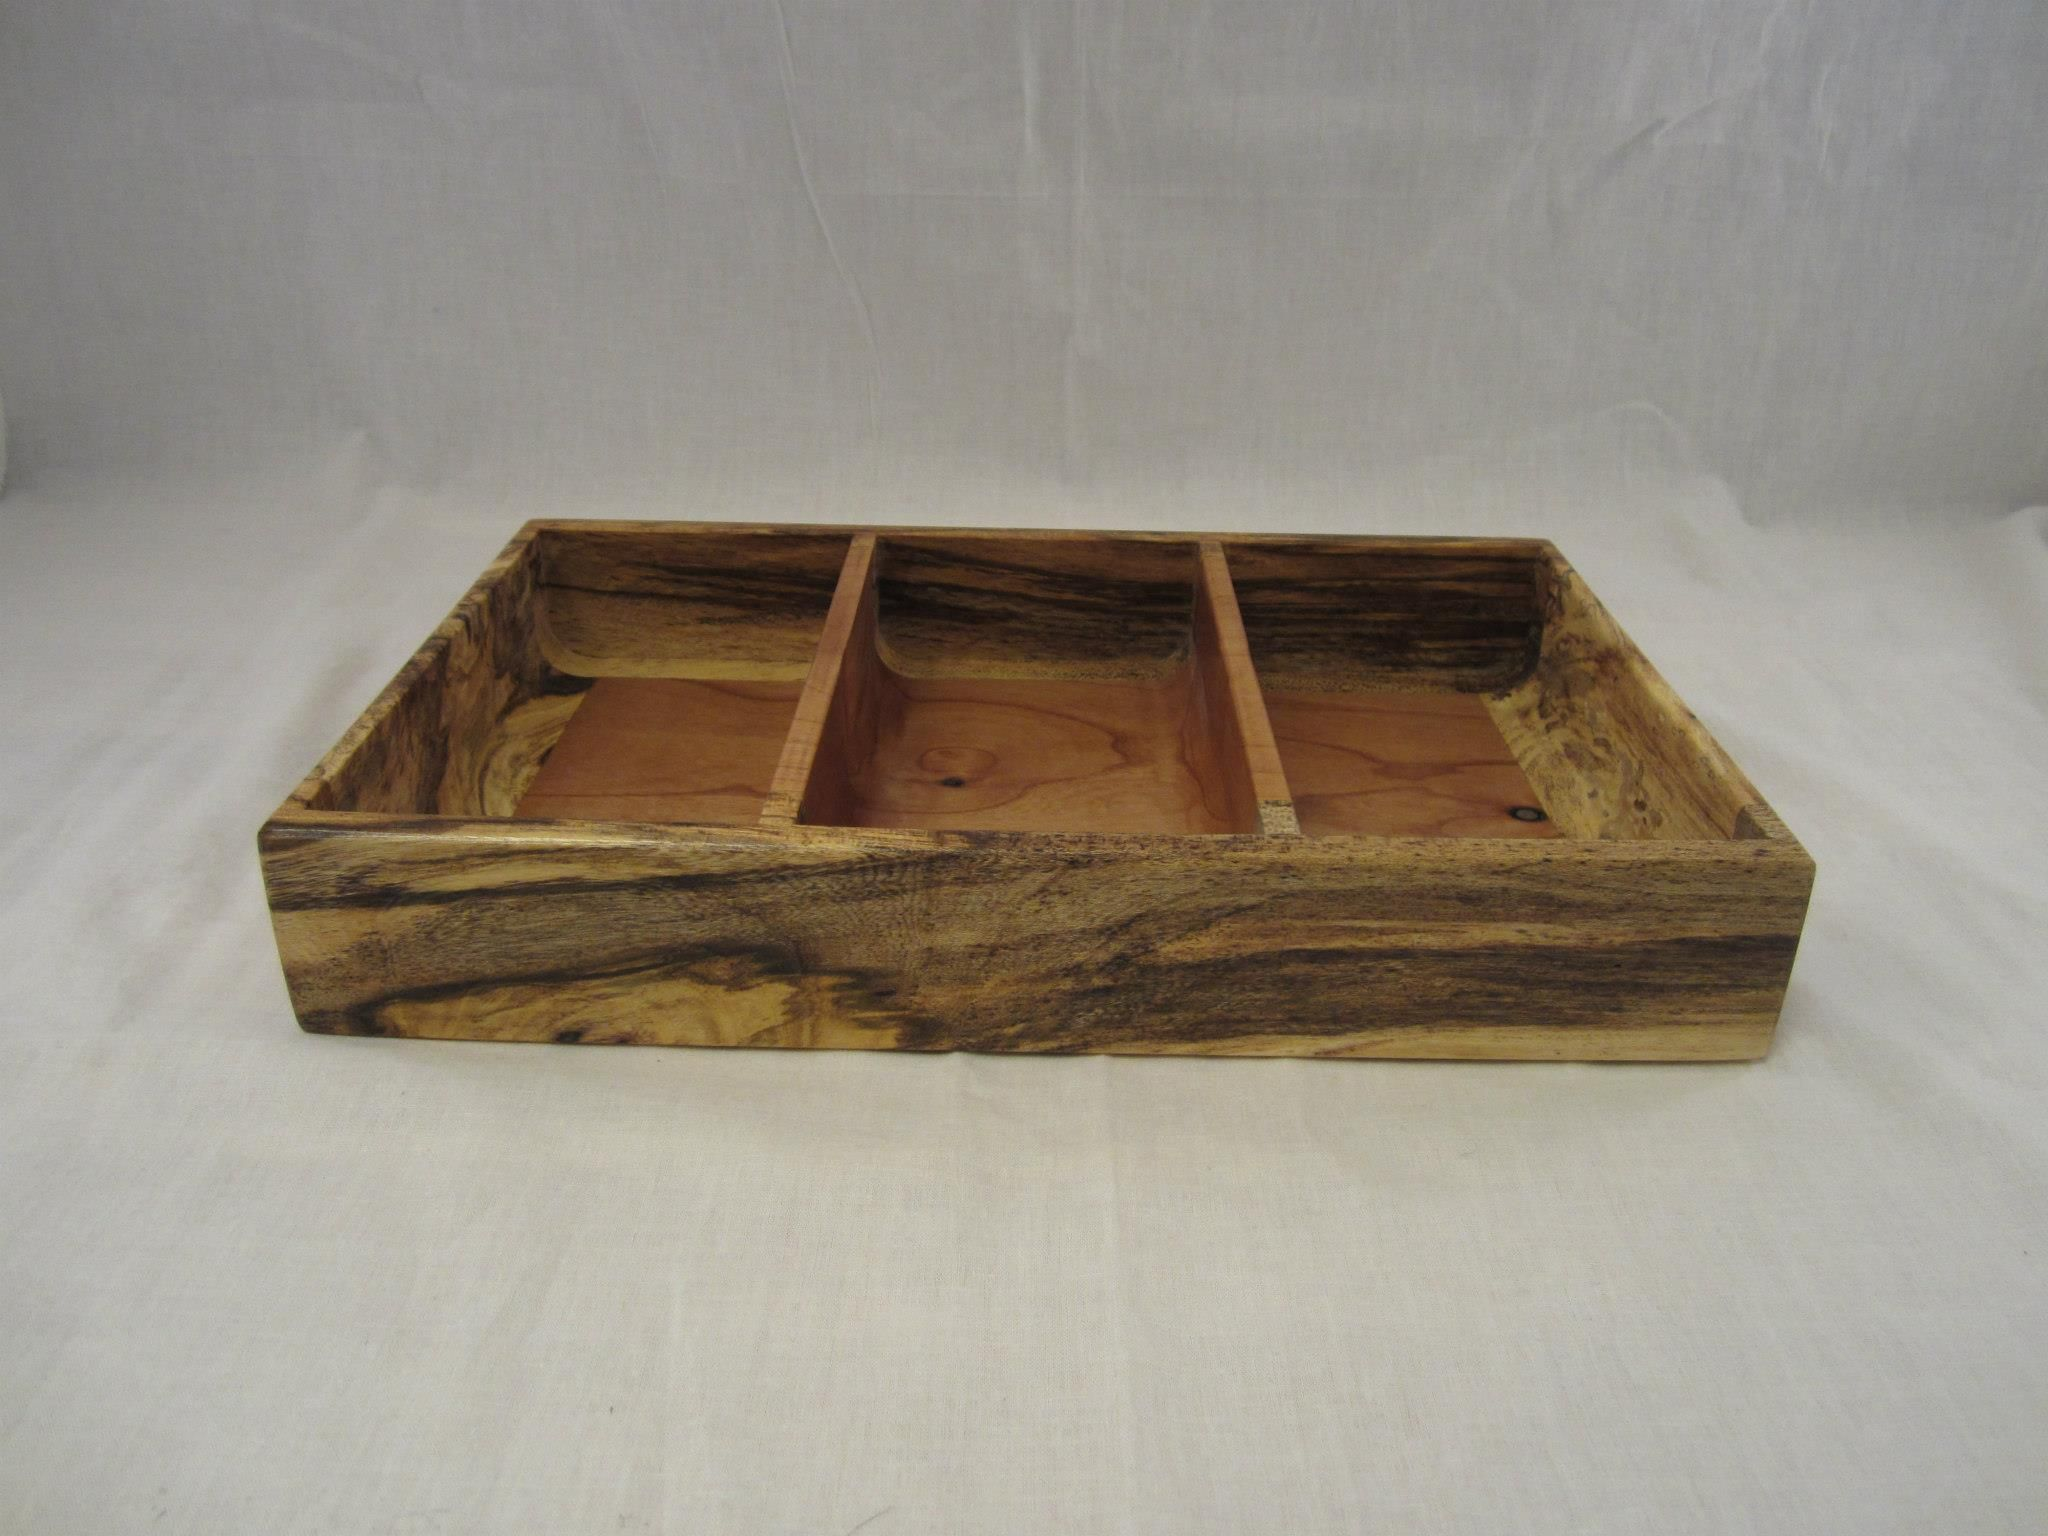 I Handcrafted This Men S Valet Tray From Alder And Spalted